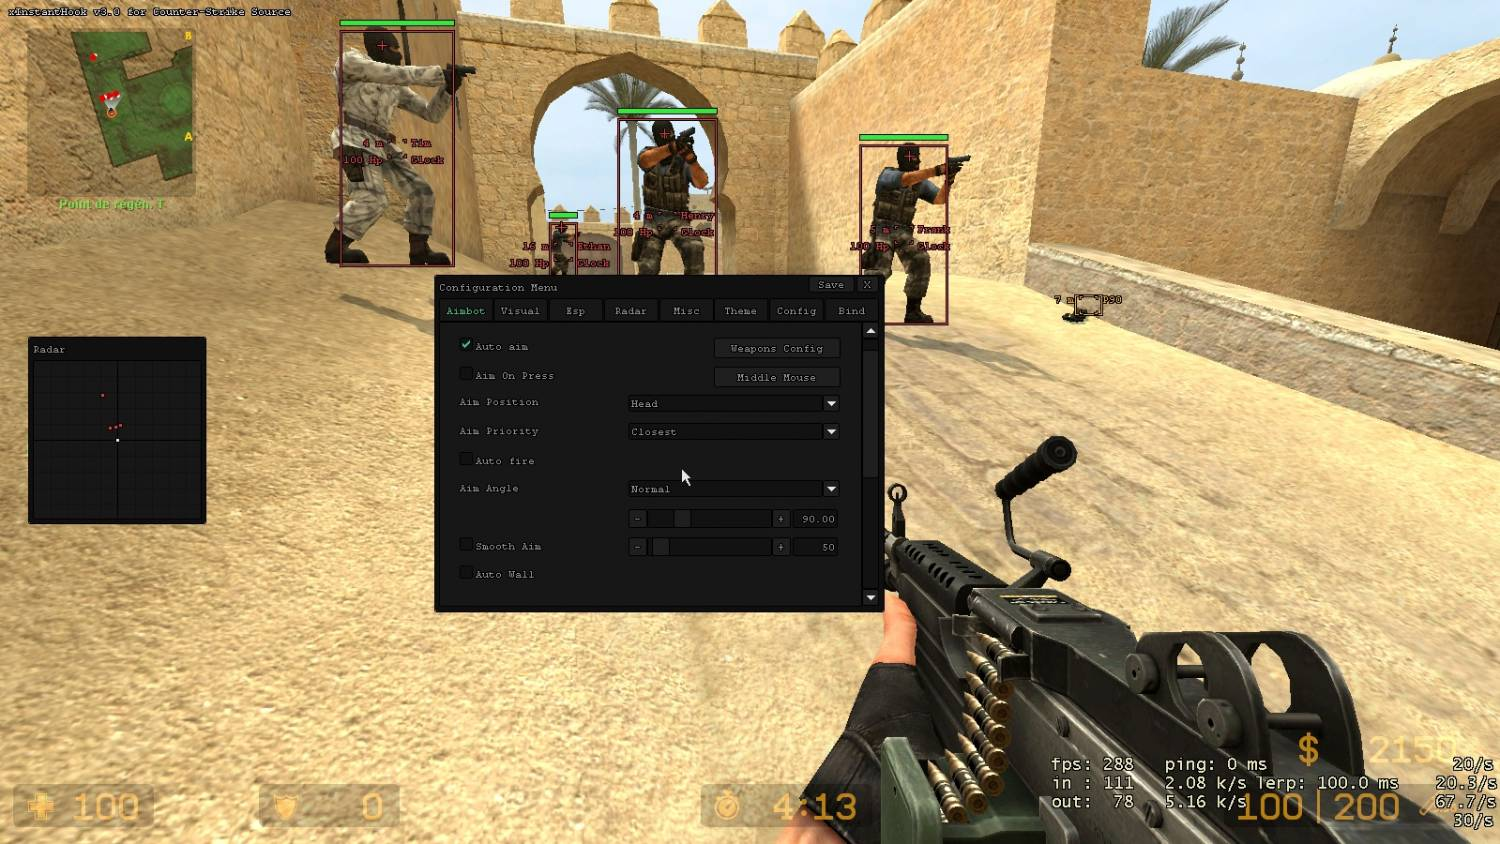 Чит для Counter-Strike Source - Чит x22 xInstantHook v3.0 - х22 для КСС